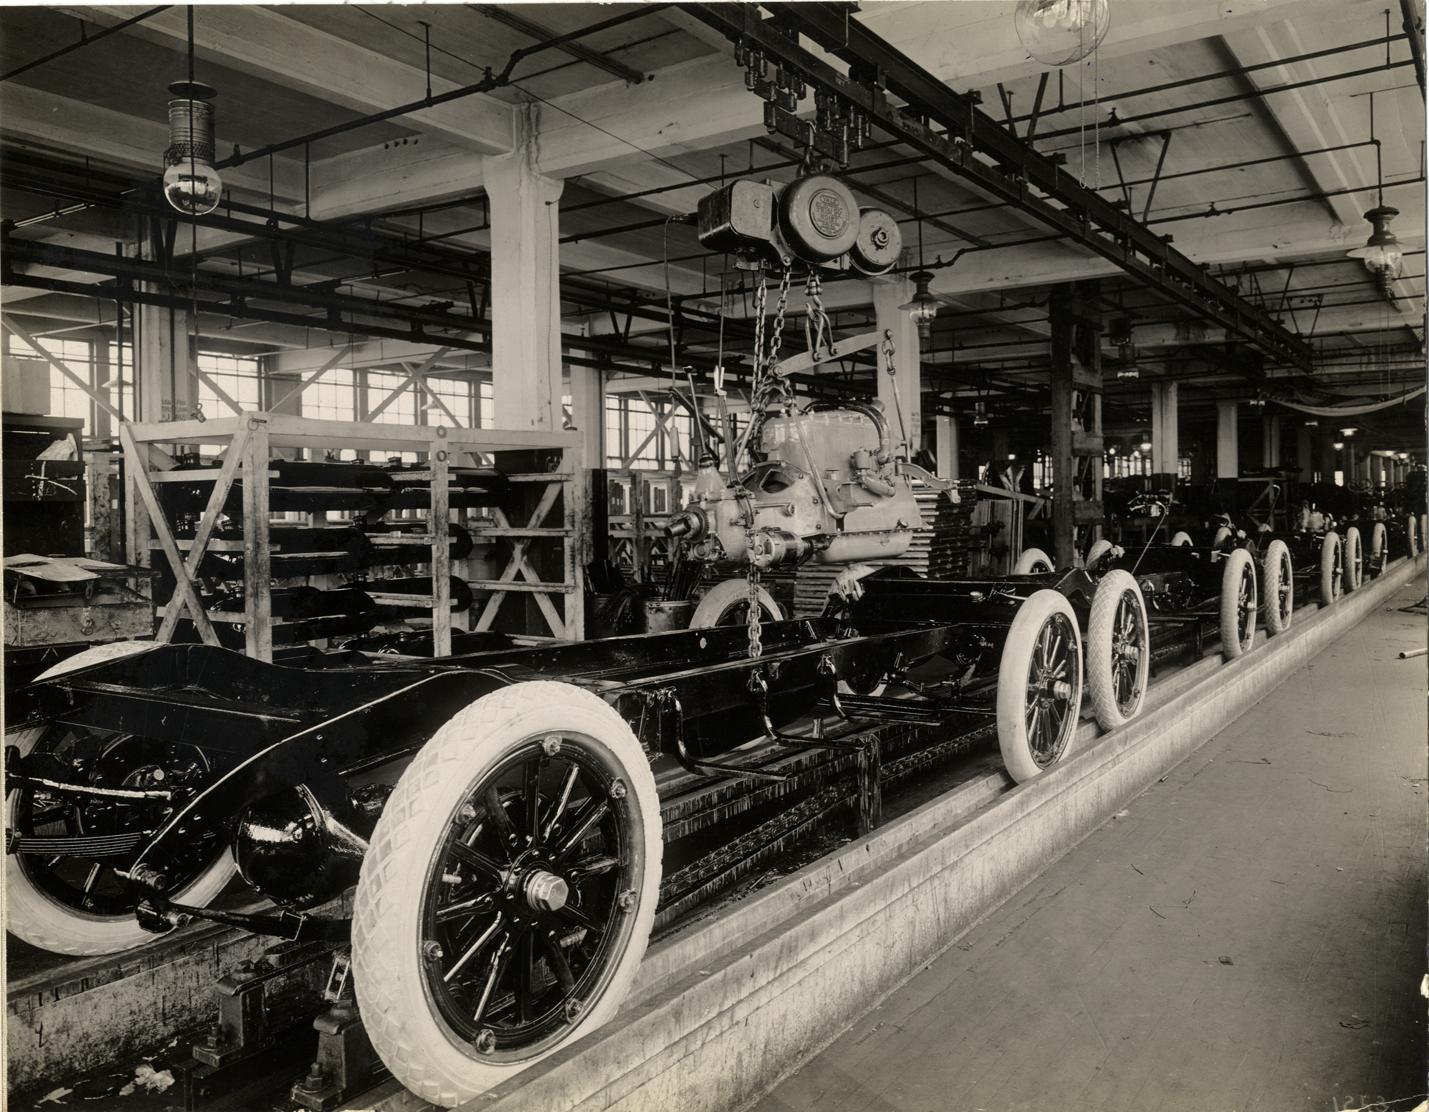 Engine being lowered onto automobile chassis, Chalmers Motor Company factory